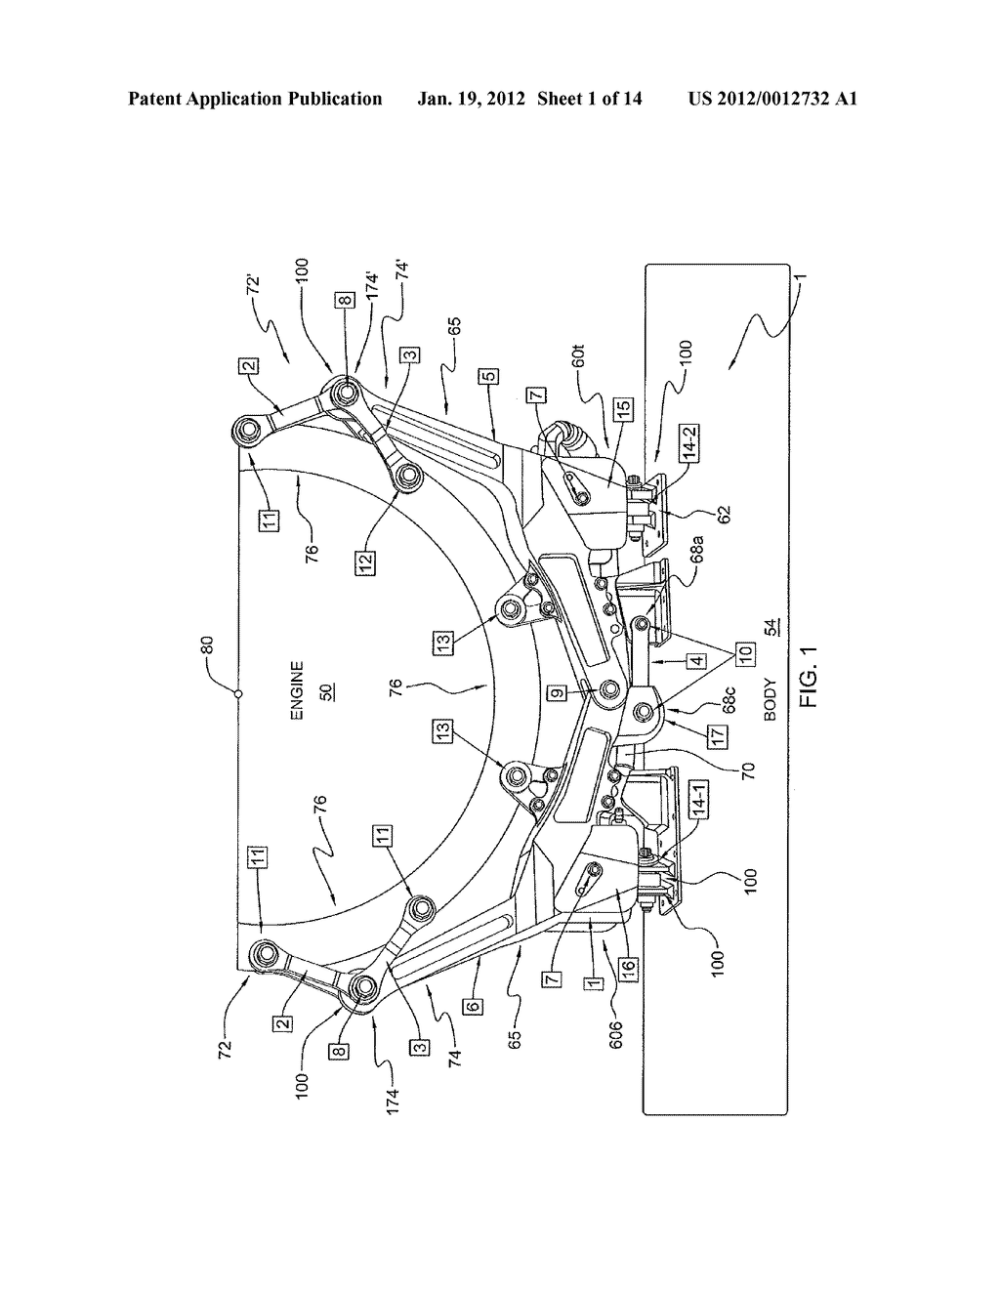 medium resolution of helicopter engine mounting system and methods diagram schematic and image 02